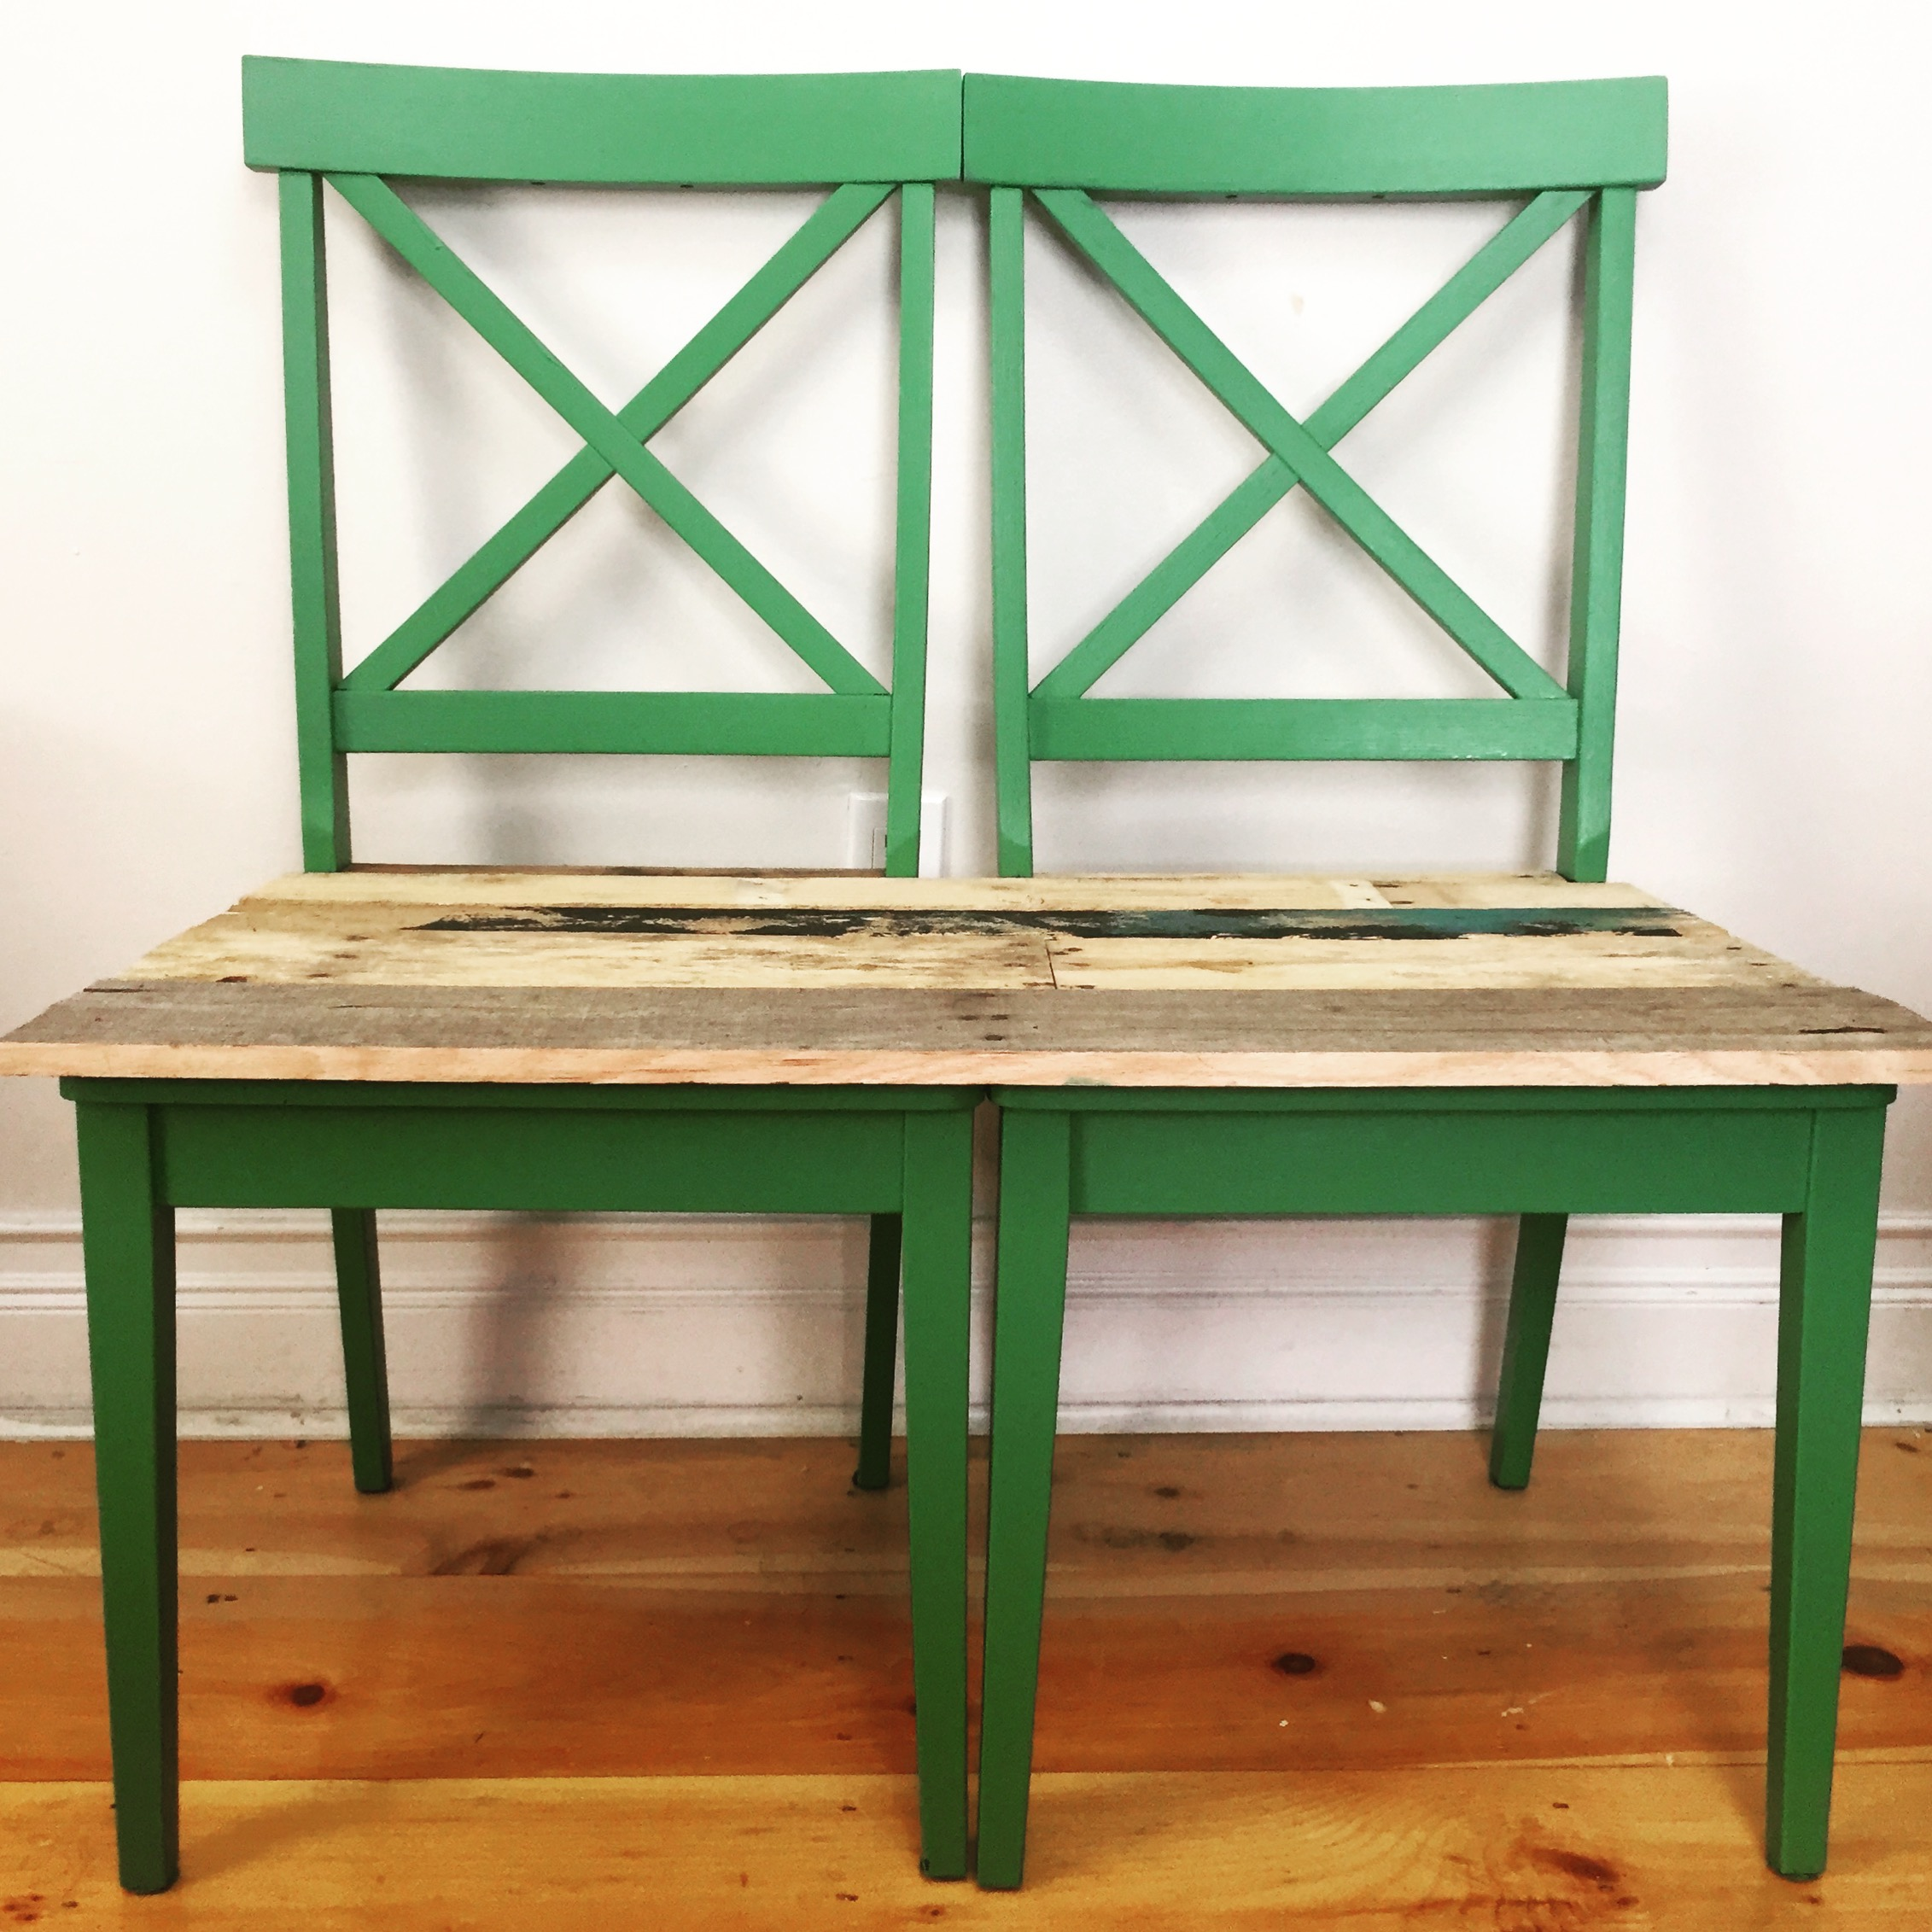 Hers & His pallet ideas: We upcycled these old chairs into